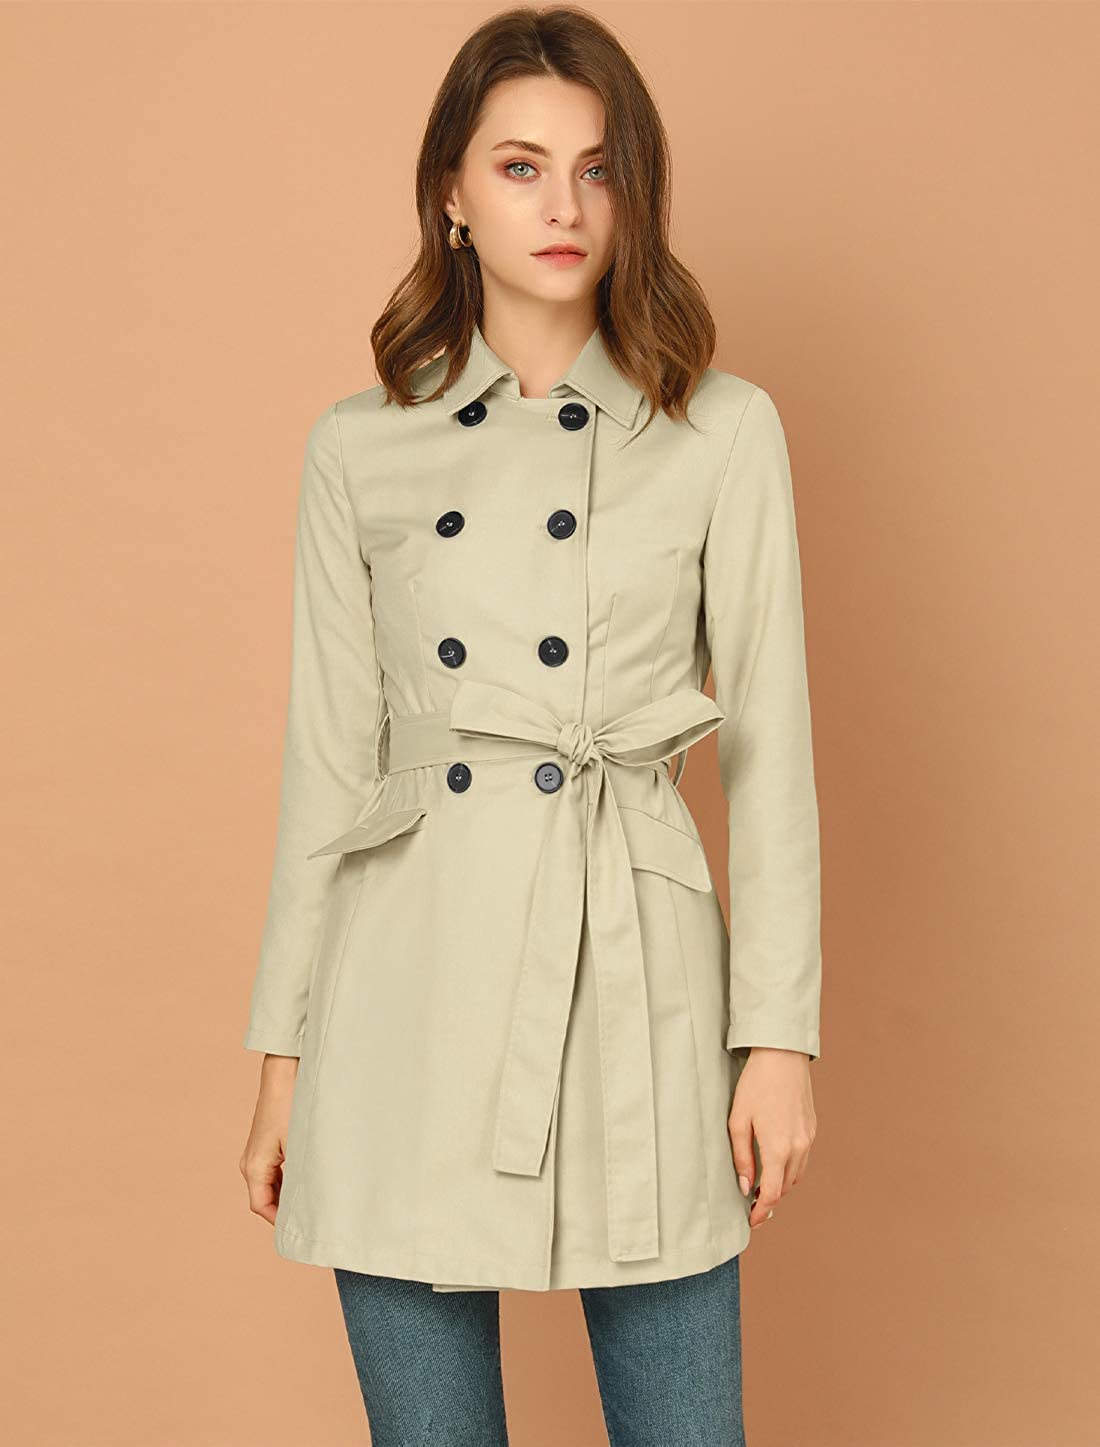 Allegra K Womens Business Button Closure Double Breasted Turndown Collar Trench Coat